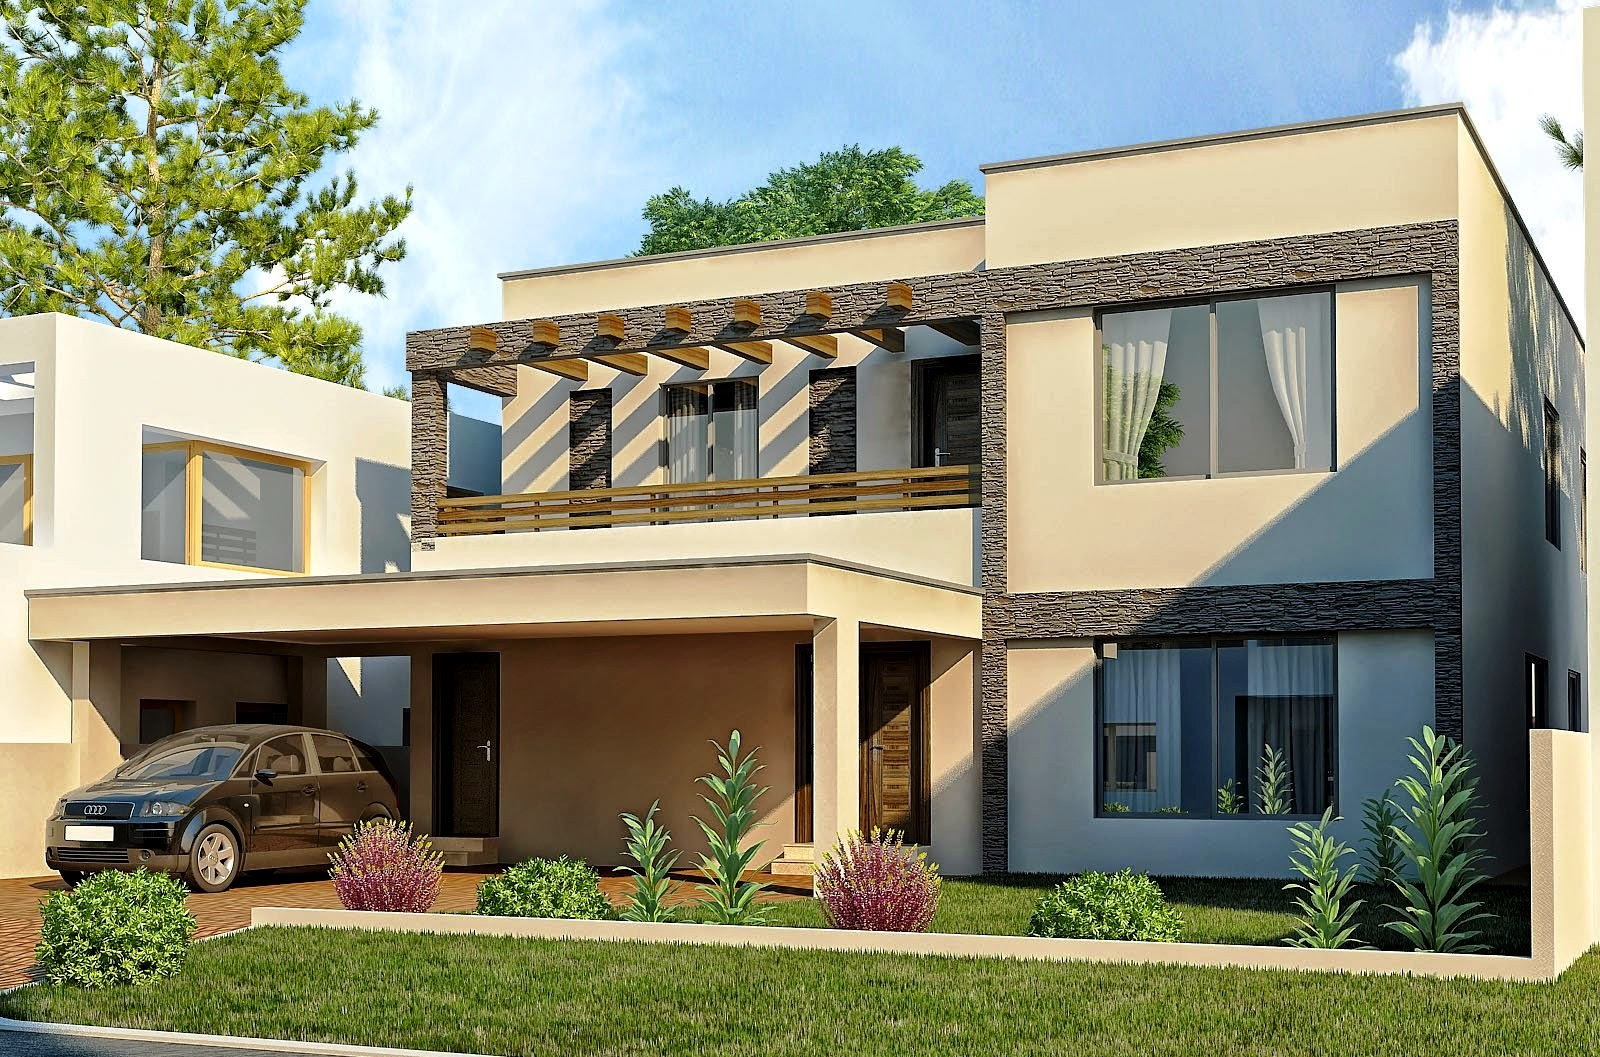 PNG HD Of Homes Transparent HD Of Homes.PNG Images. | PlusPNG